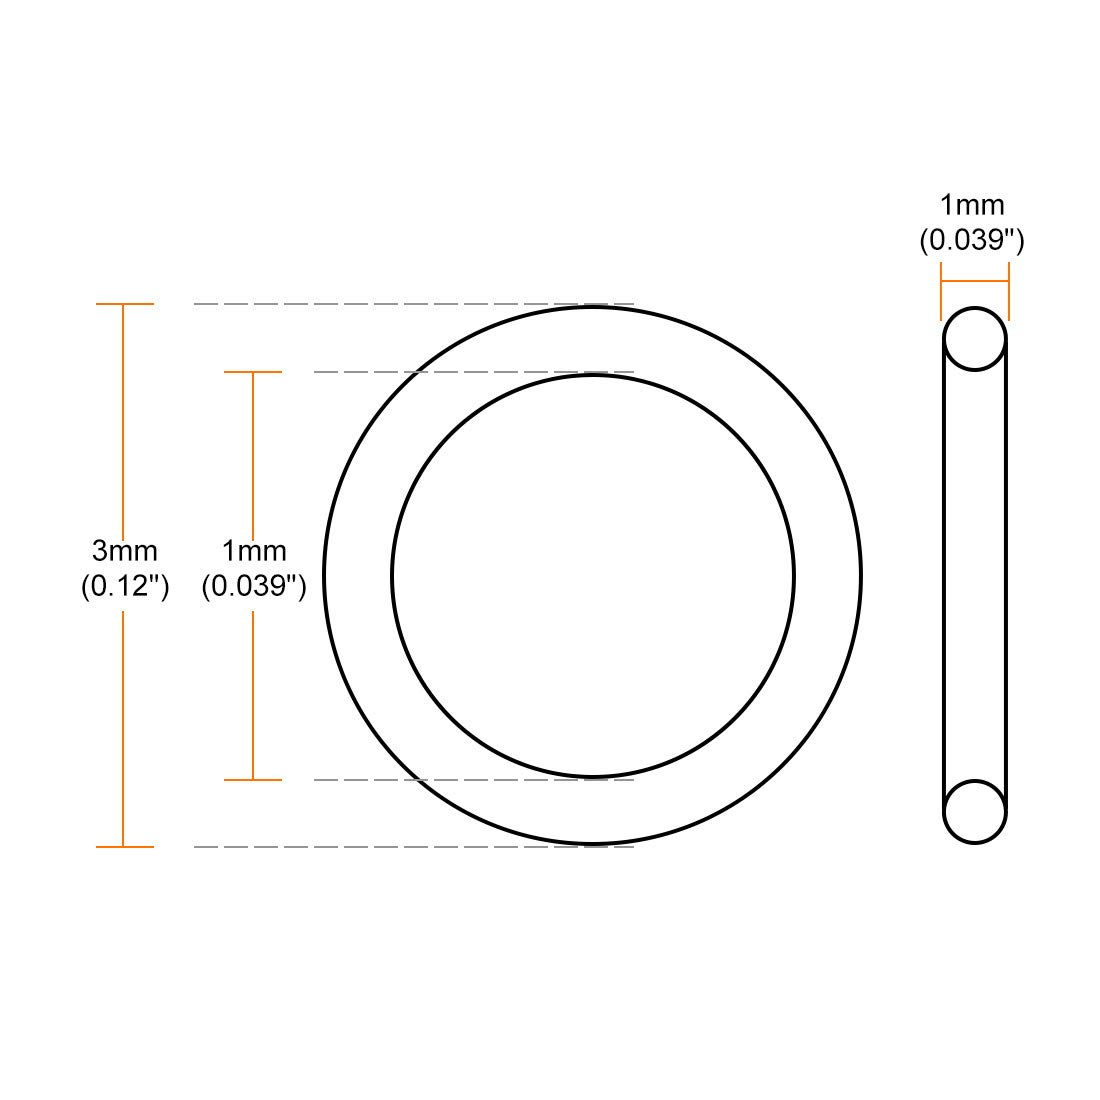 3mm OD 1mm ID 1mm Width FKM Seal Gasket for Vehicle Machinery Plumbing uxcell Fluorine Rubber O-Rings Green Pack of 20